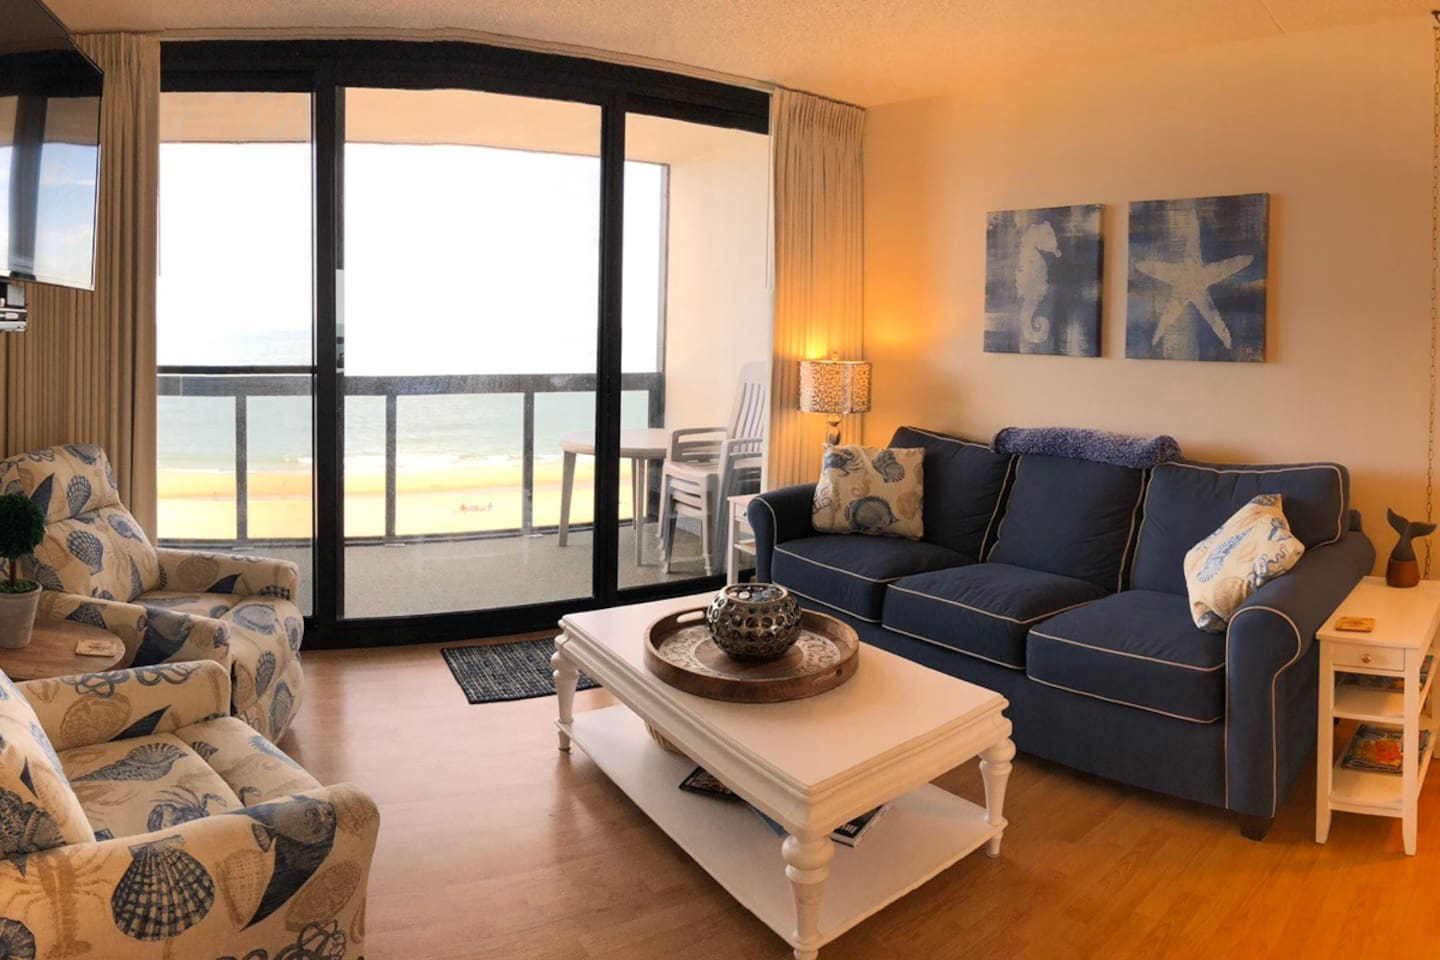 Cozy, stylish living room with gorgeous oceanfront view through floor to ceiling windows!